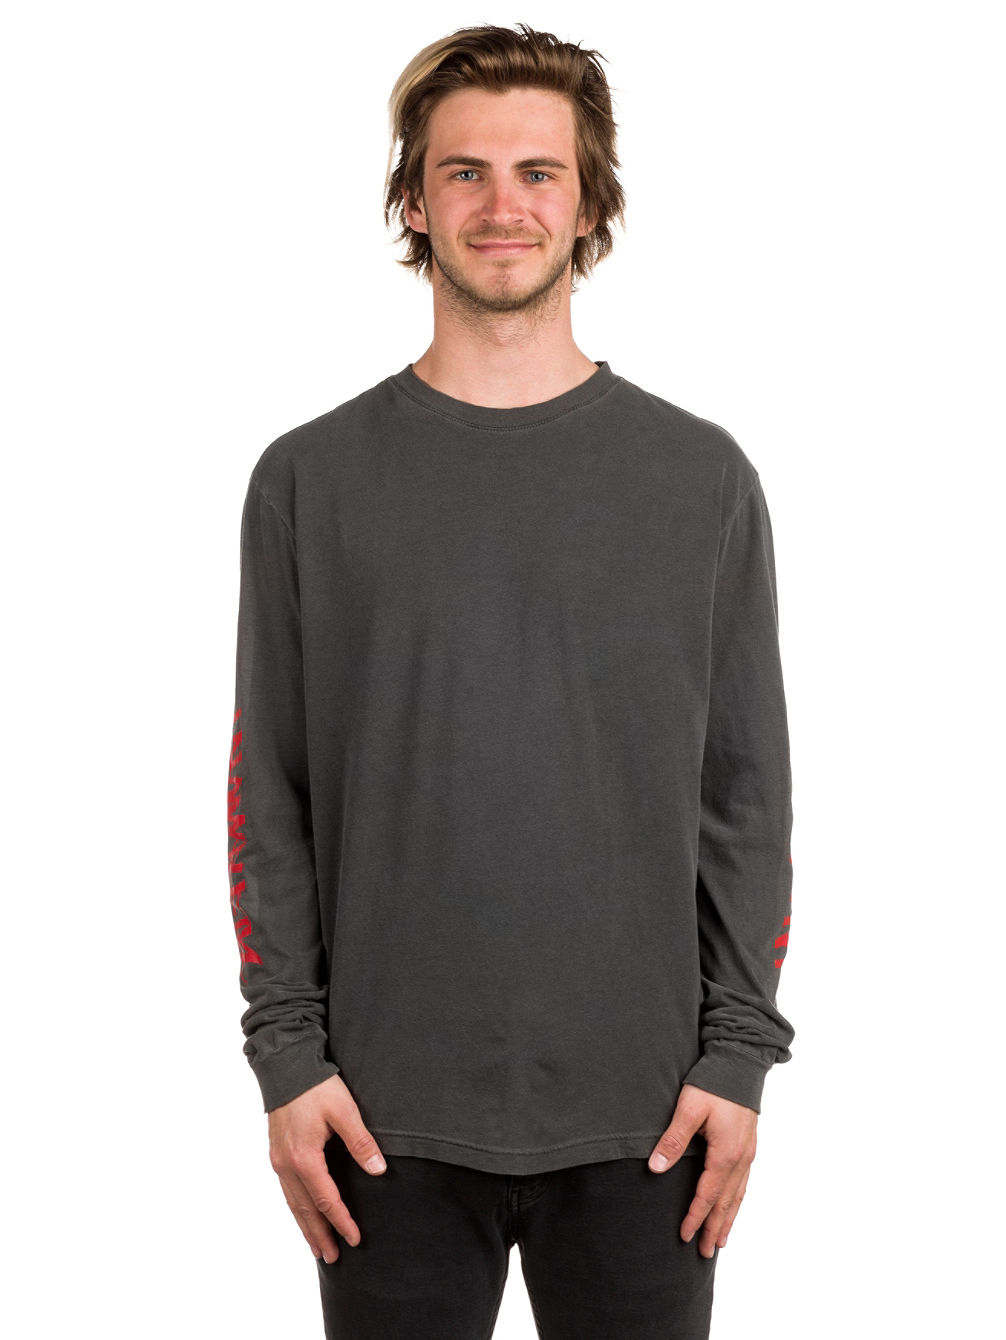 One Liner Sleeves T-Shirt LS